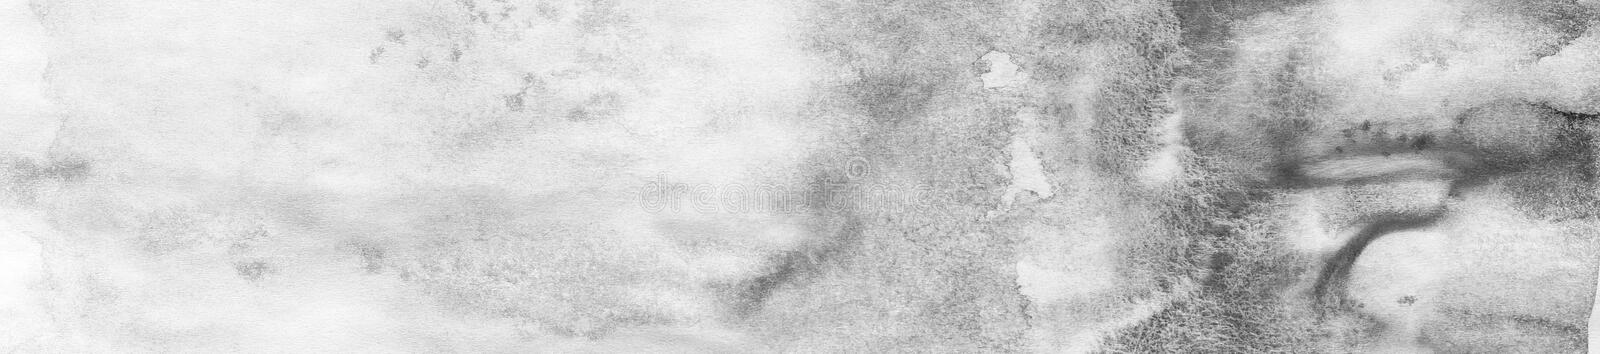 banner of Black abstract watercolor macro texture background. Abstract aquarelle texture grayscale backdrop stock illustration